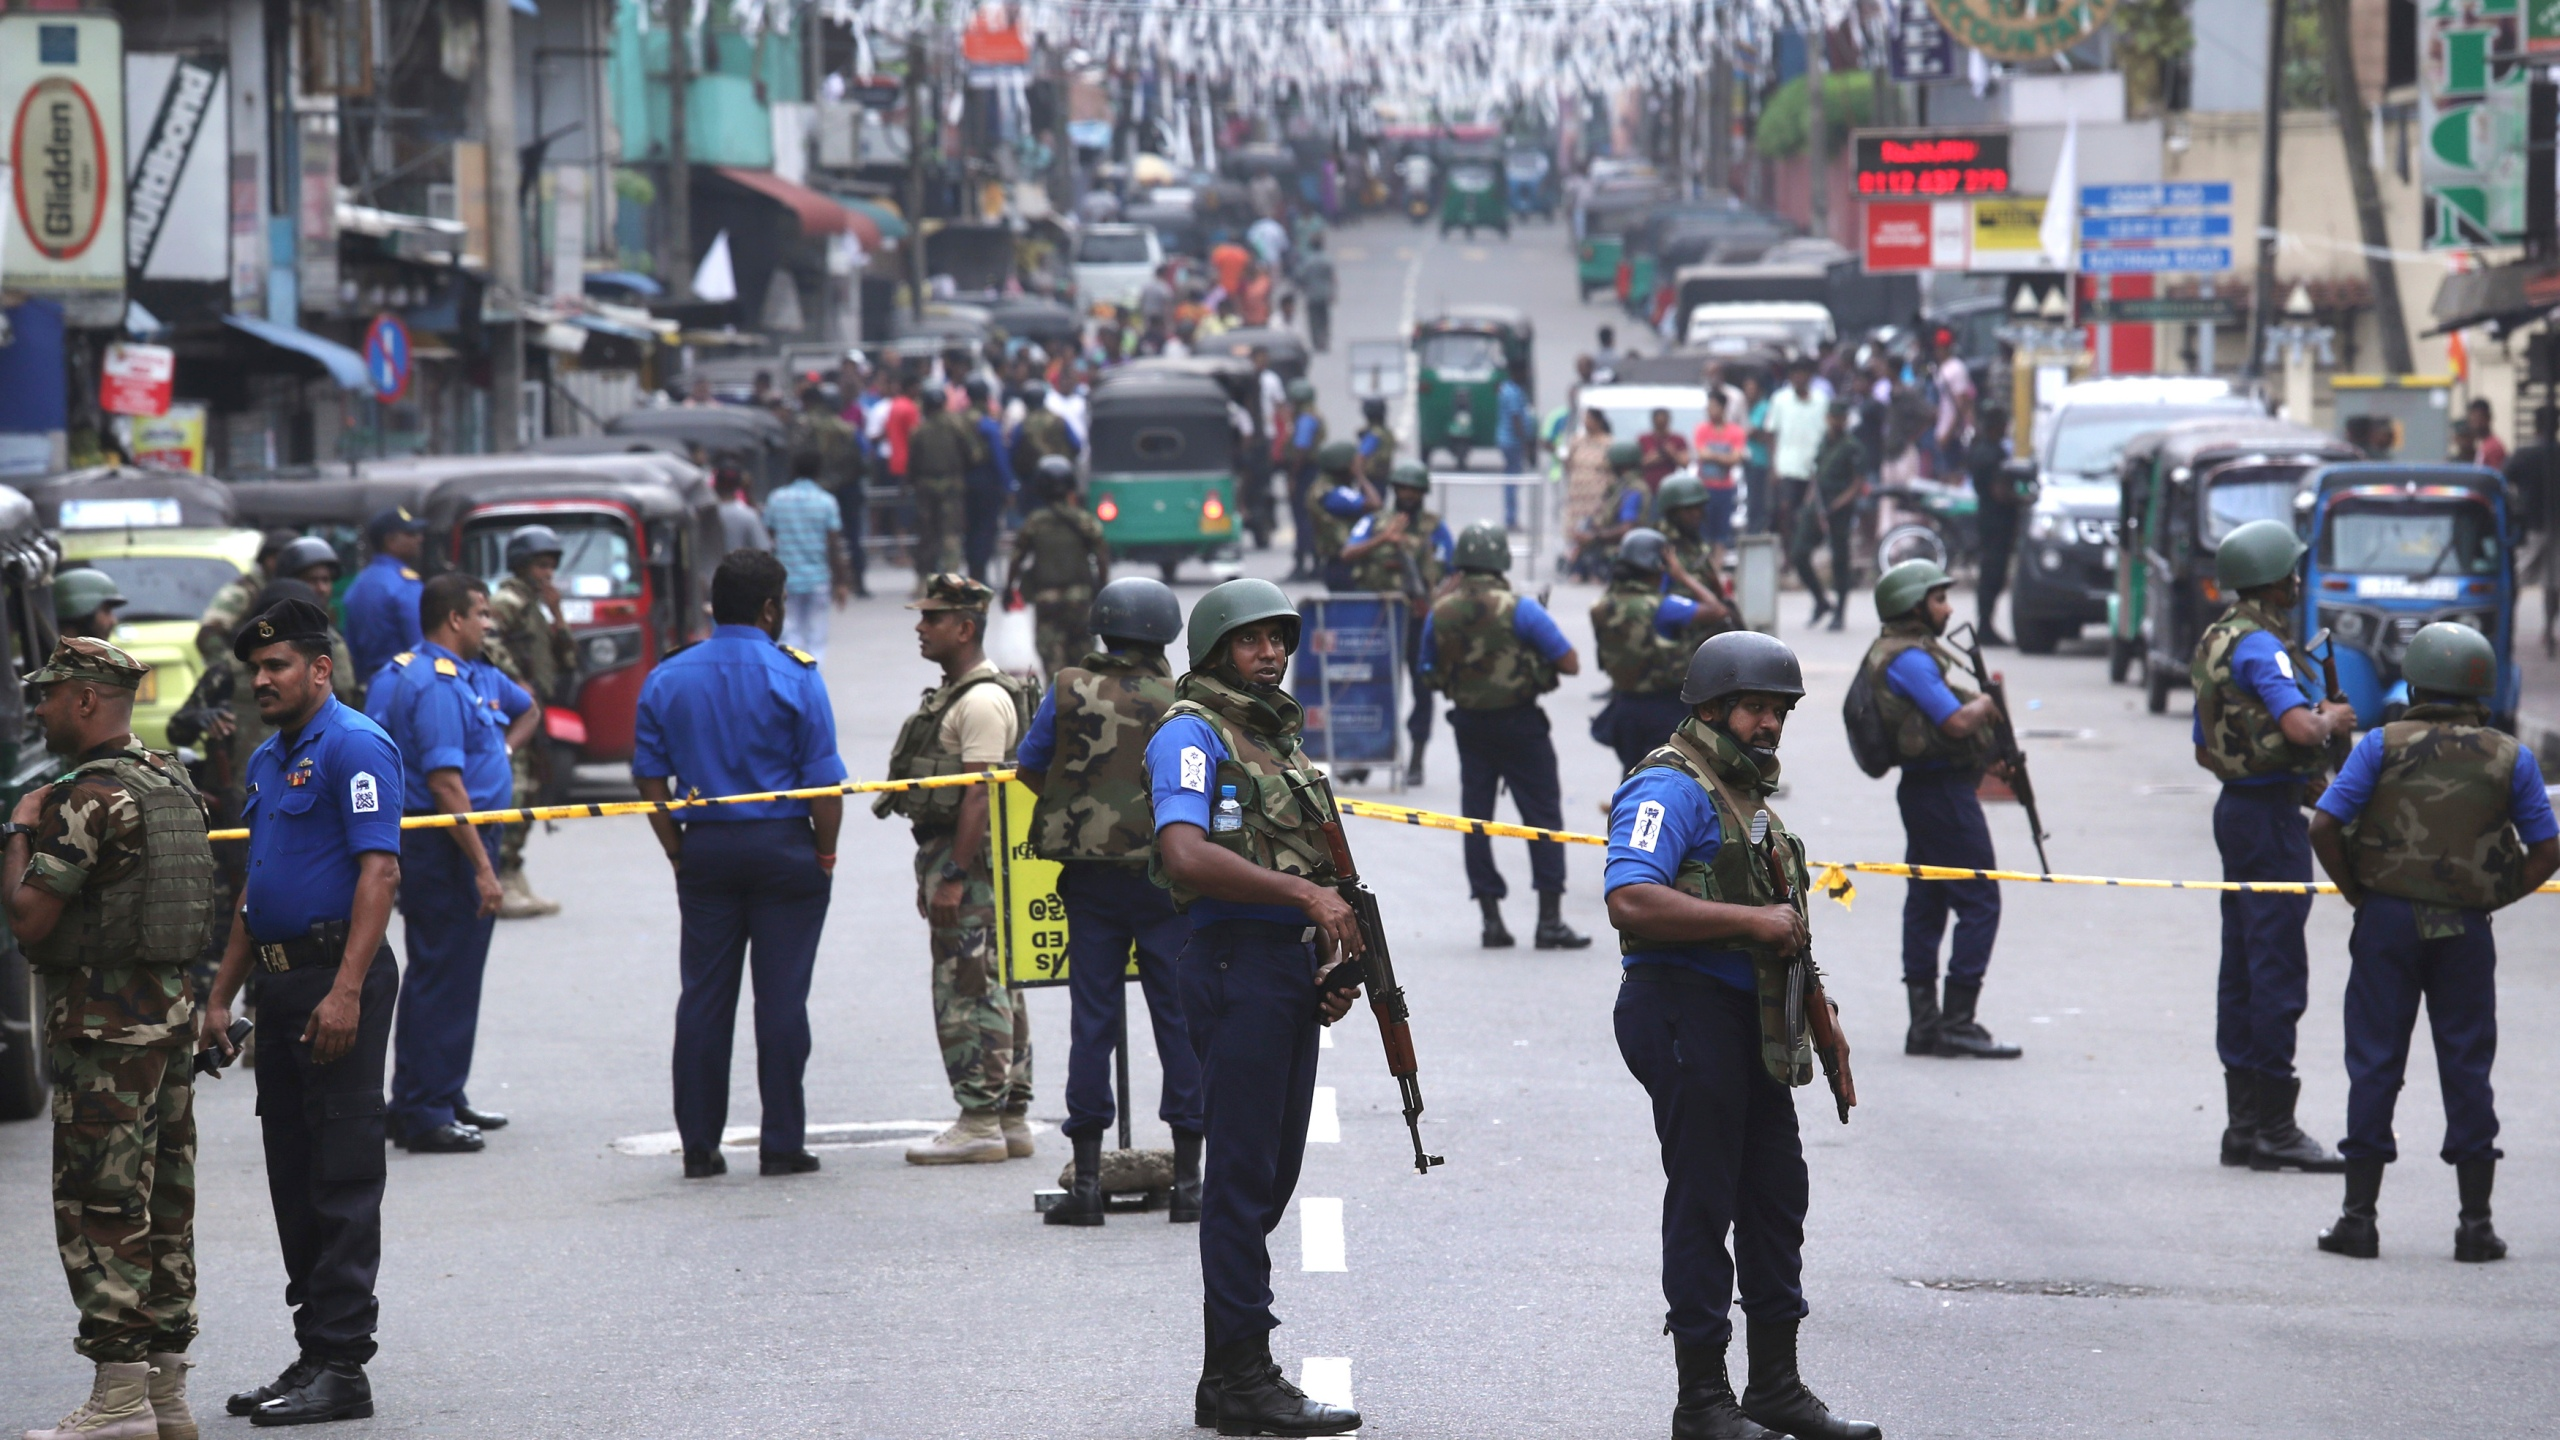 Sri_Lanka_Blasts_08488-159532.jpg95390474